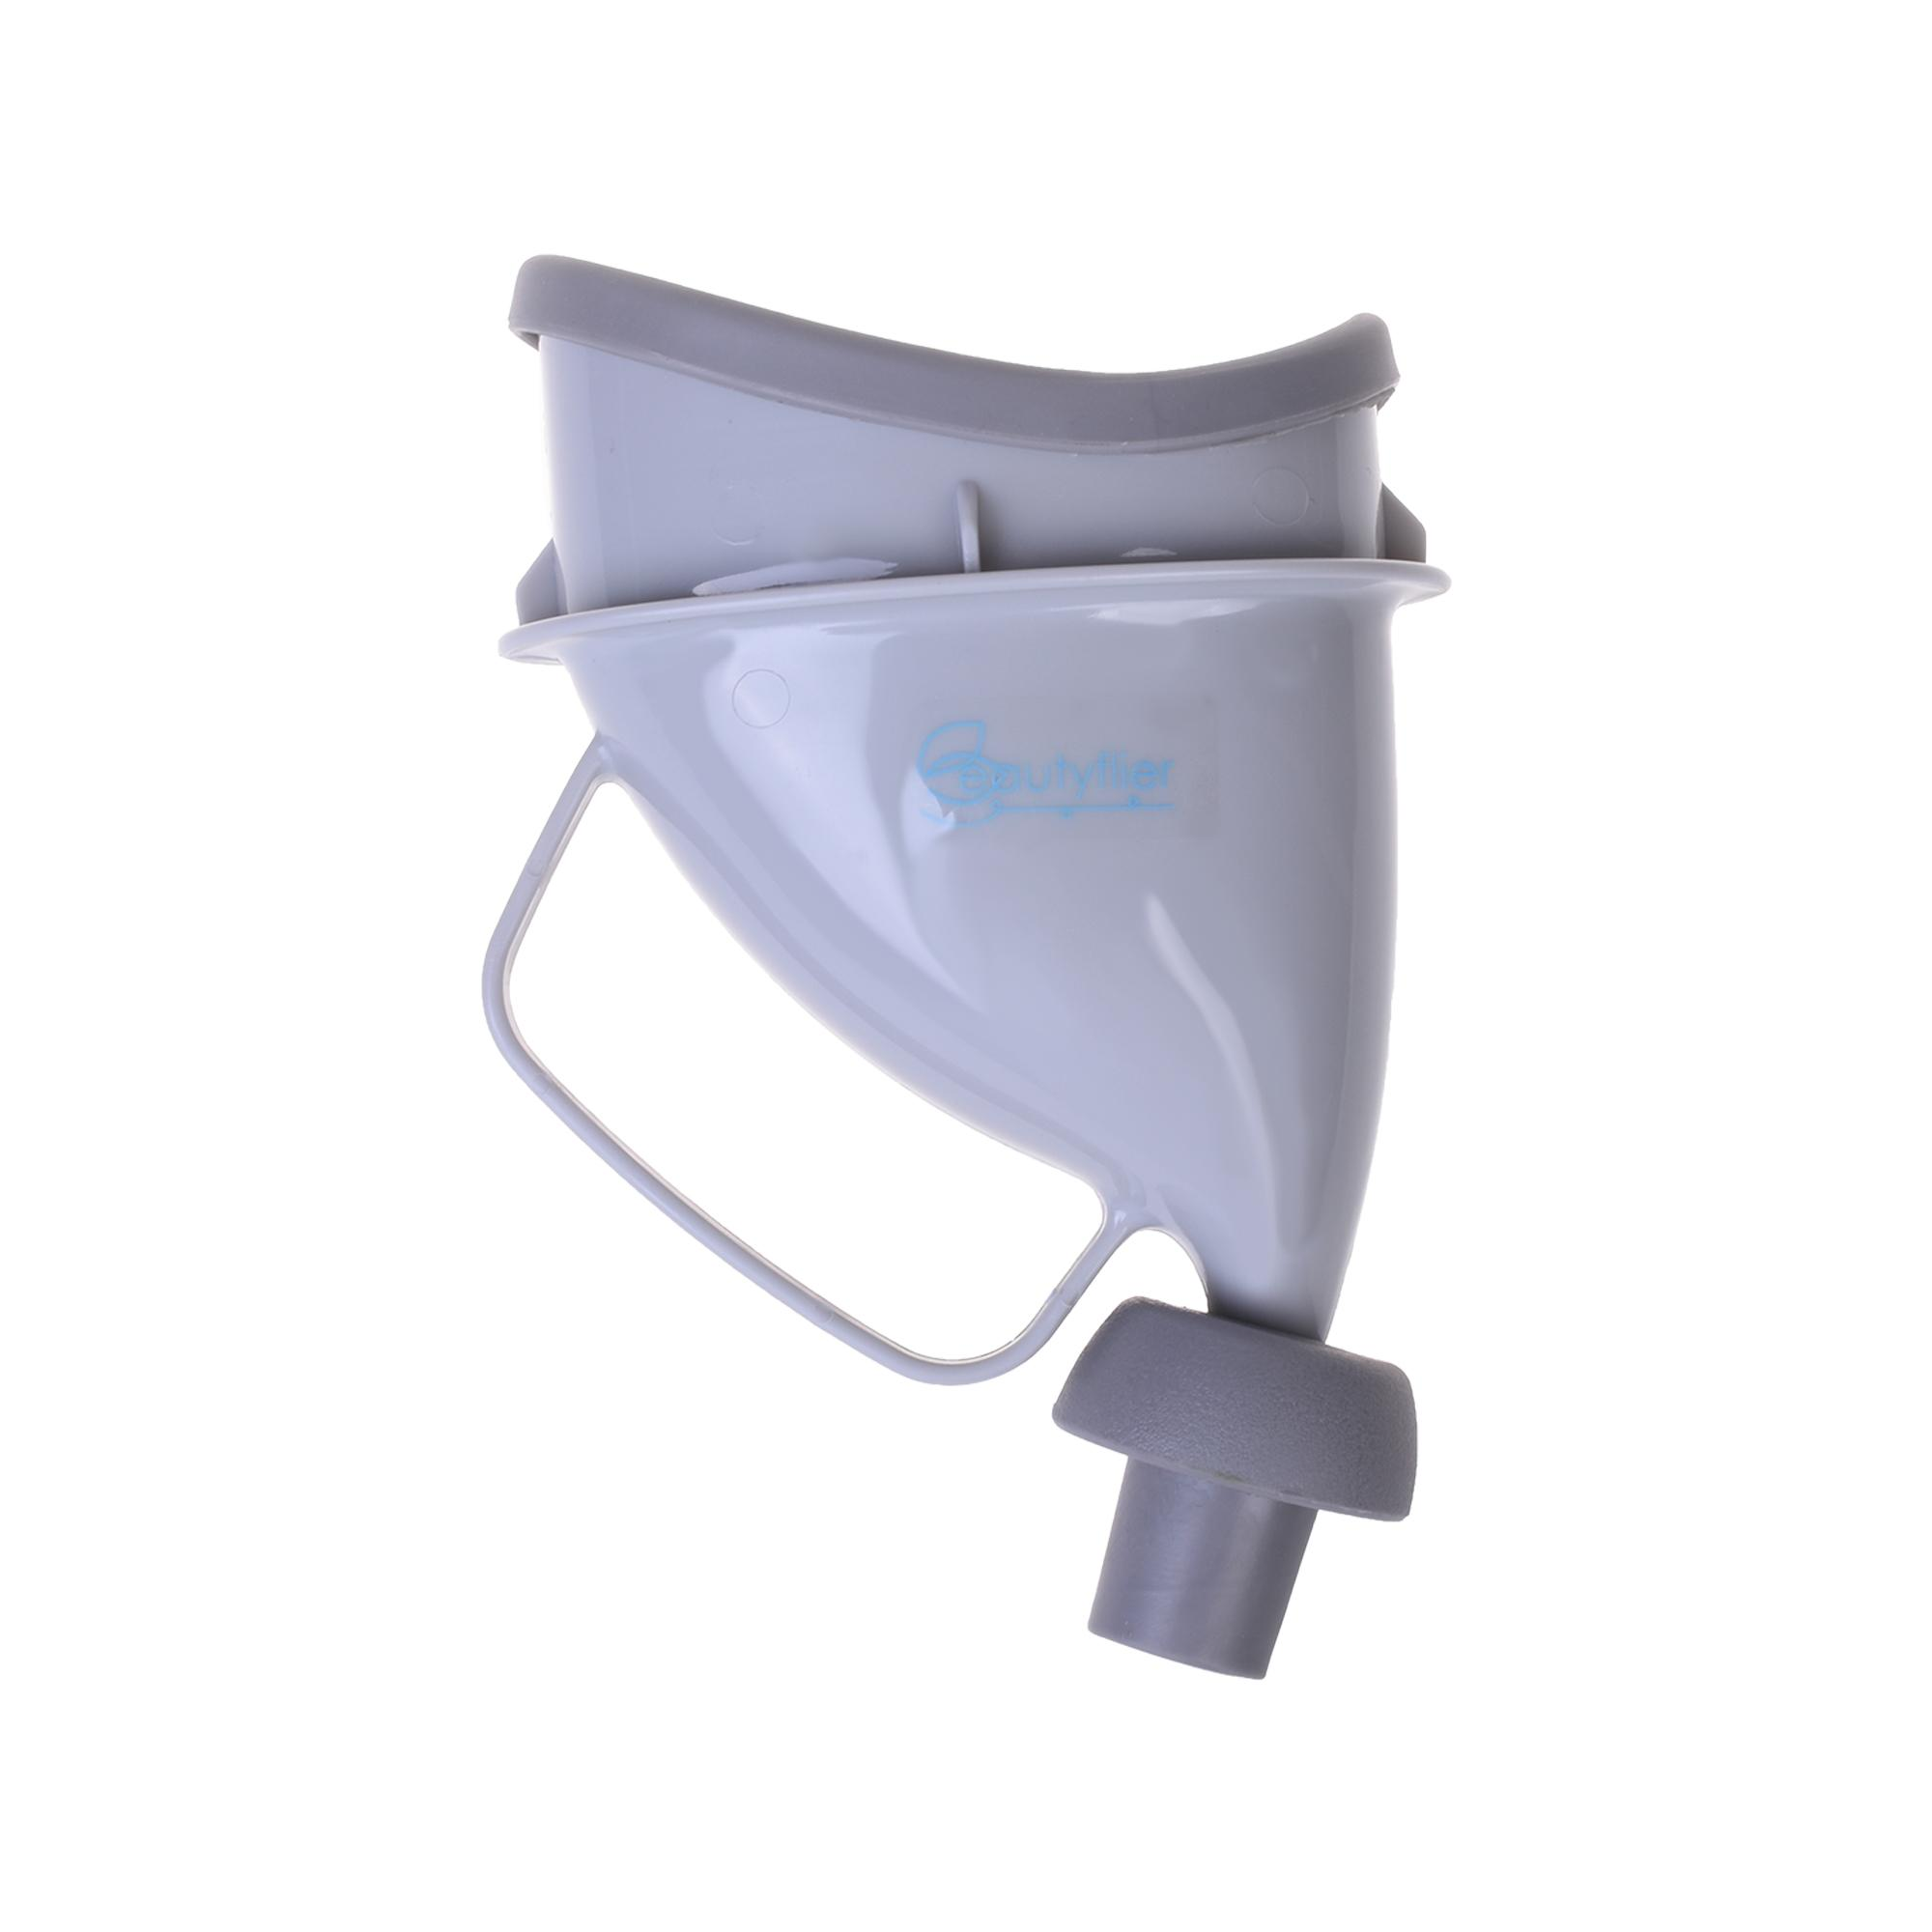 Lightning Power-Unisex Portable Urinal Potty Device Reusable Car Funnel Camping Travel Toilet Pee Bottle Car Portable Urinal Ladies Outdoor Travel Standing Emergency Urinal Car On The Elderly And Children Urinary(gray) By Lightning Power.